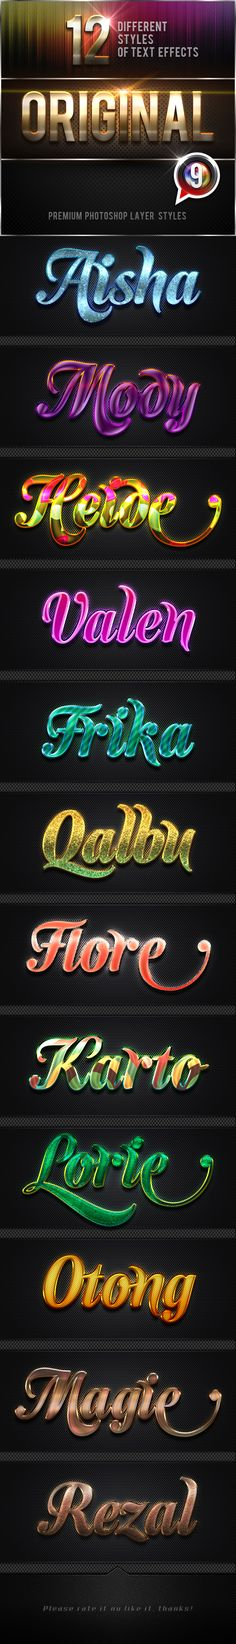 12 Original Photoshop Text Effects Vol.9 by MualanaDesign  Original Photoshop Text Effects Vol.9With high quality and premium effects can produce the effect of a more perfect and interesti